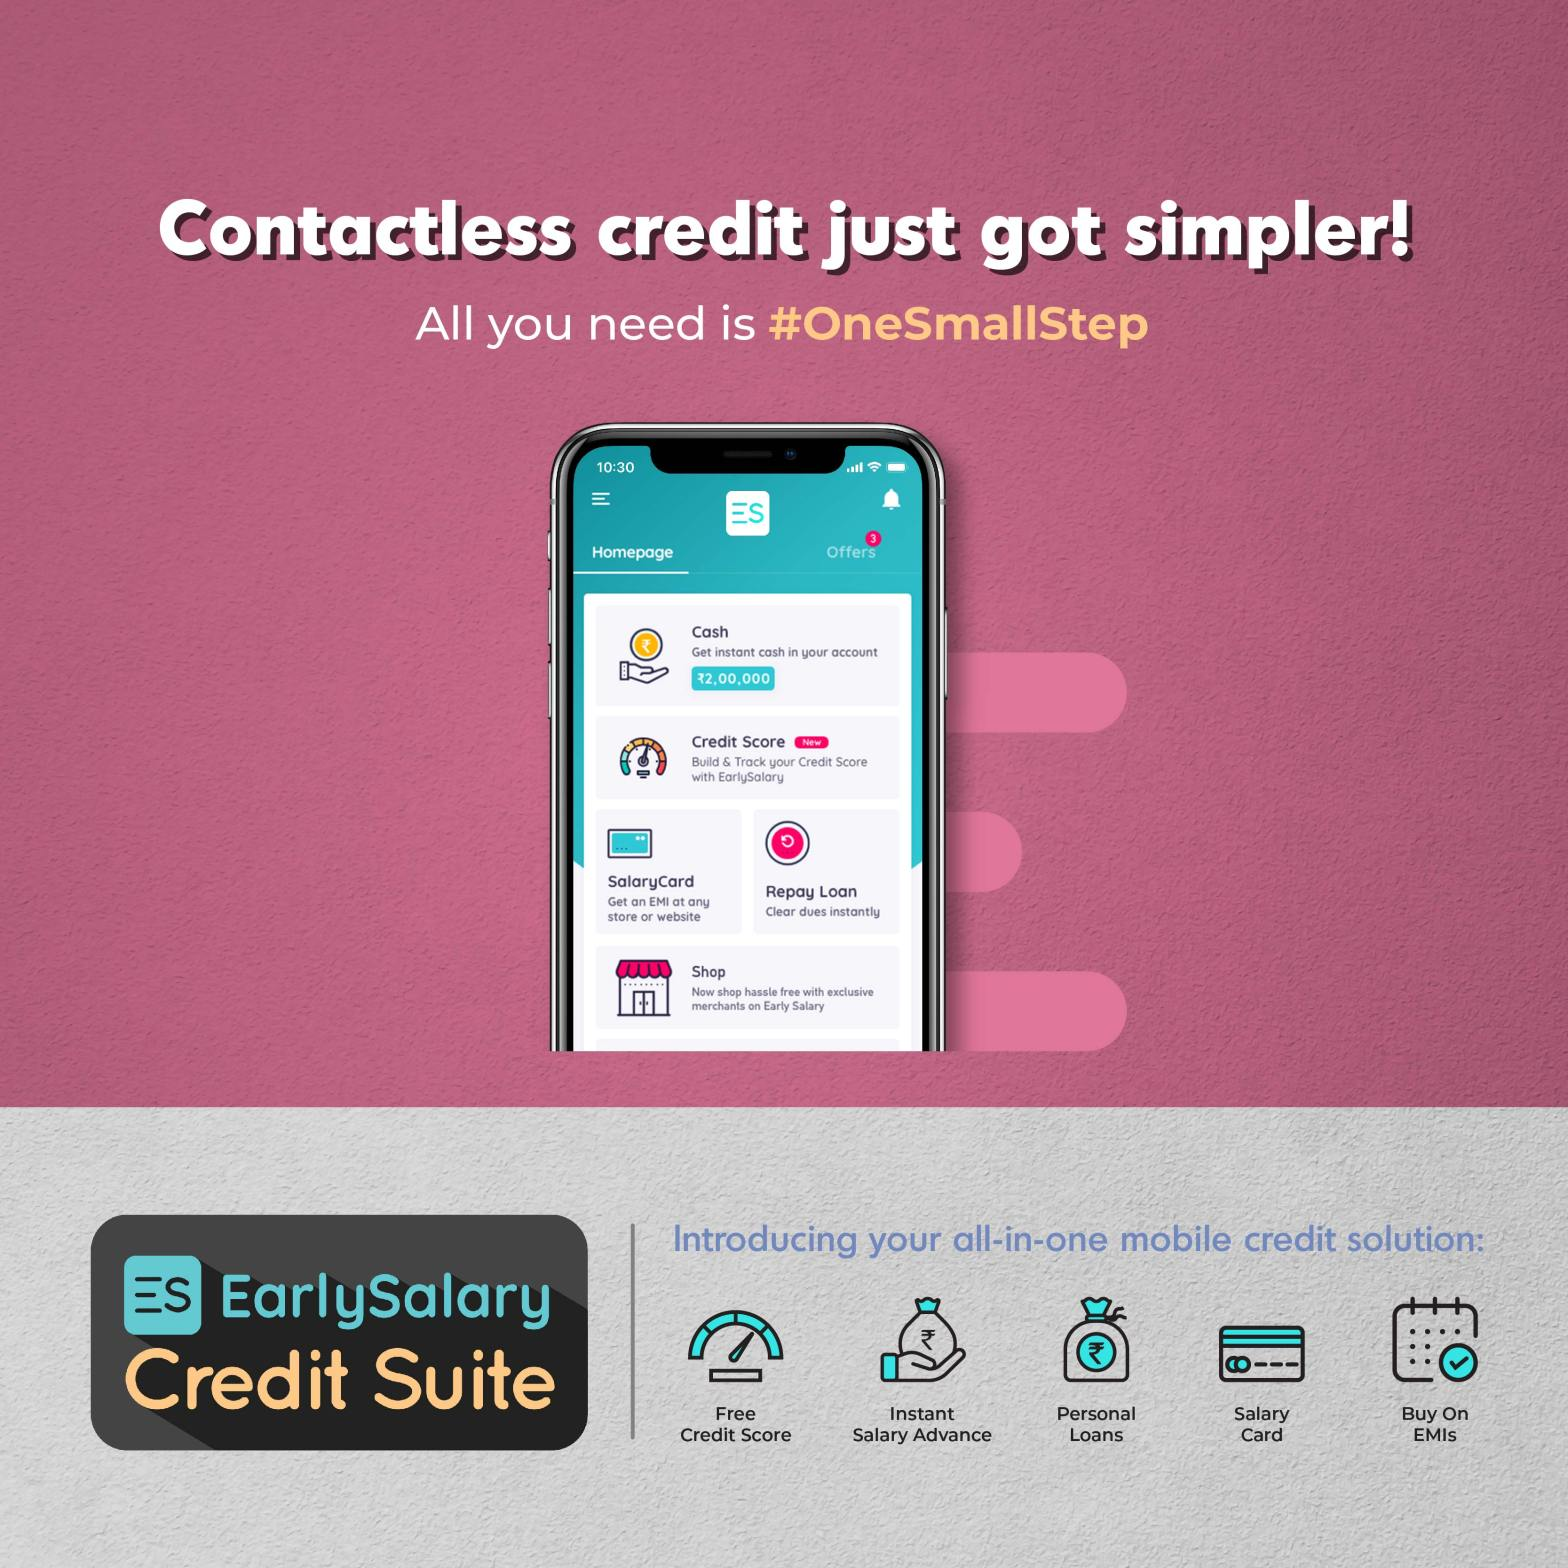 EarlySalary Credit Suite